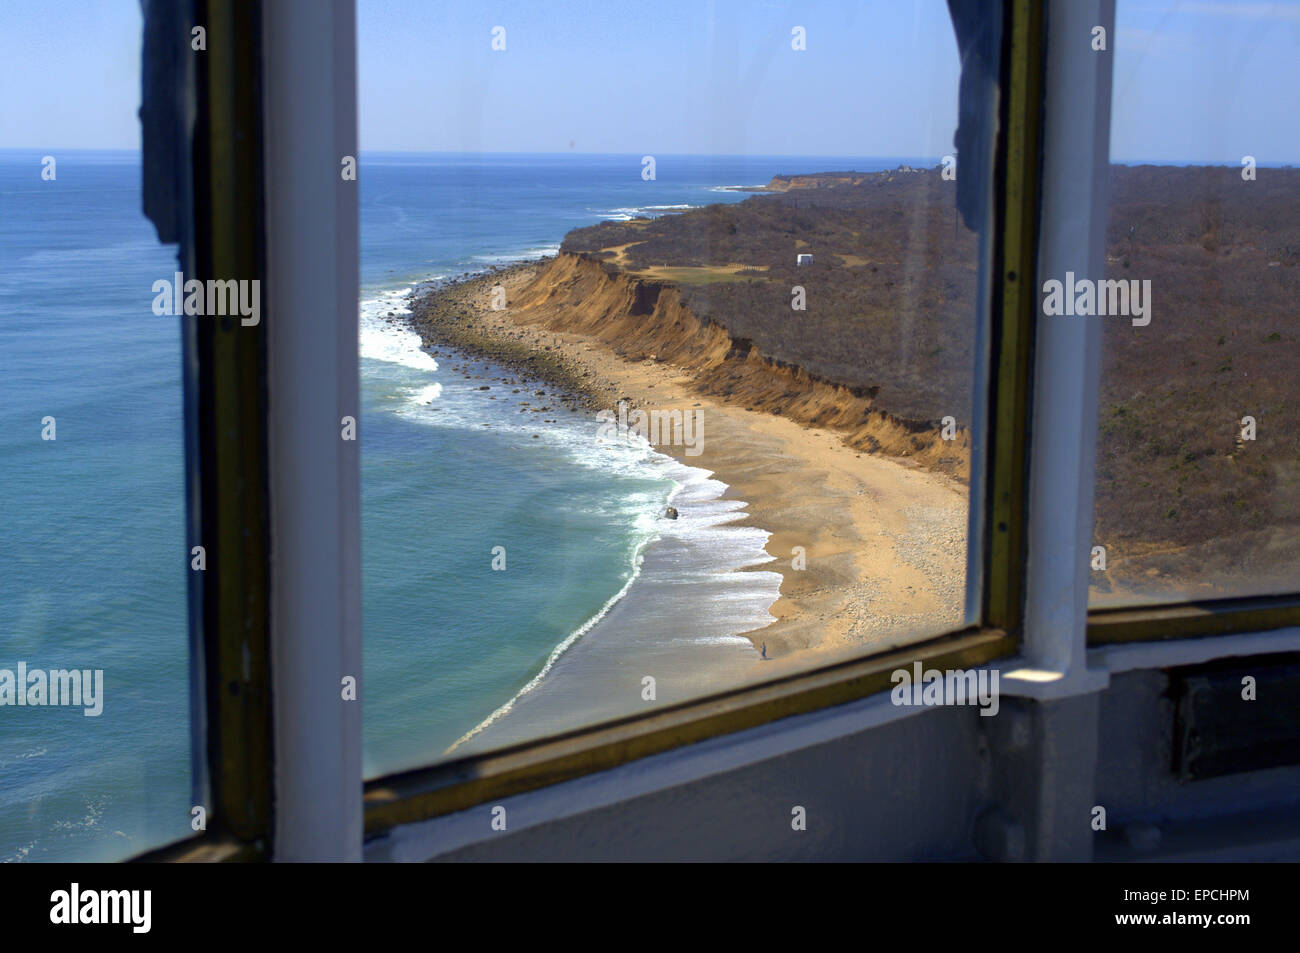 'From inside the Lantern Room', Montauk Point Lighthouse, Cliffs of Montauk NY 'The Hamptons' - Stock Image